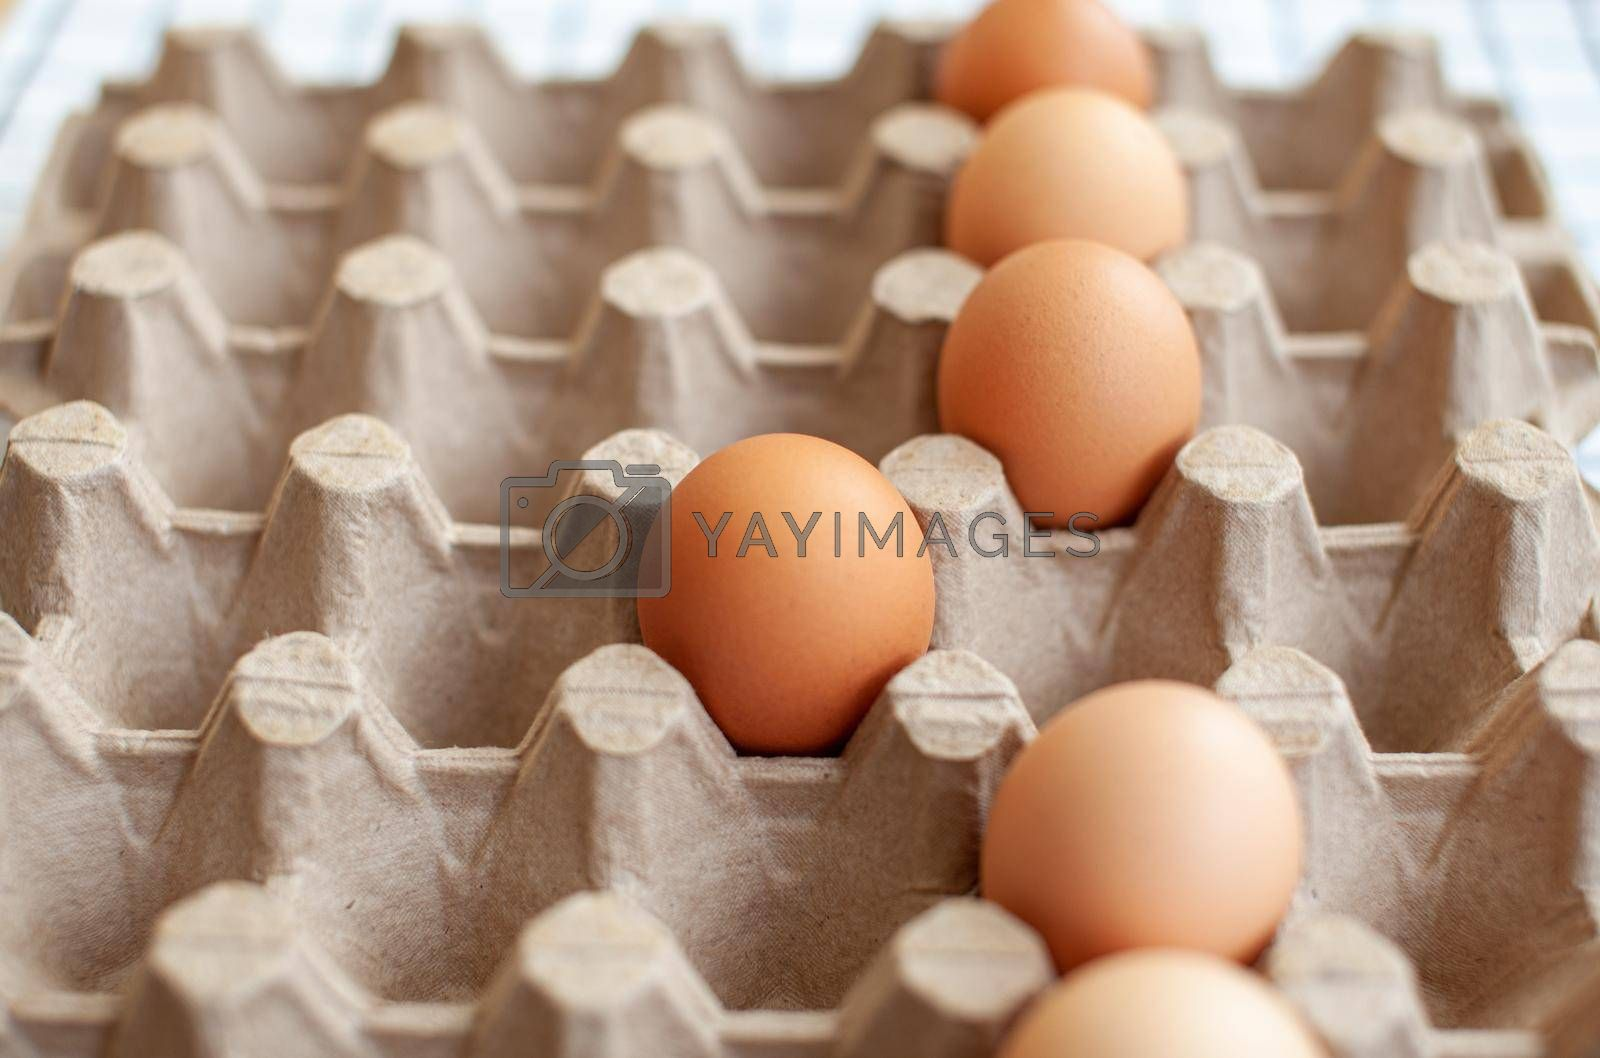 A few brown eggs among the empty cells of a large cardboard bag, a chicken egg as a valuable nutritious product, a tray for carrying and storing fragile eggs. One egg stands out from the row